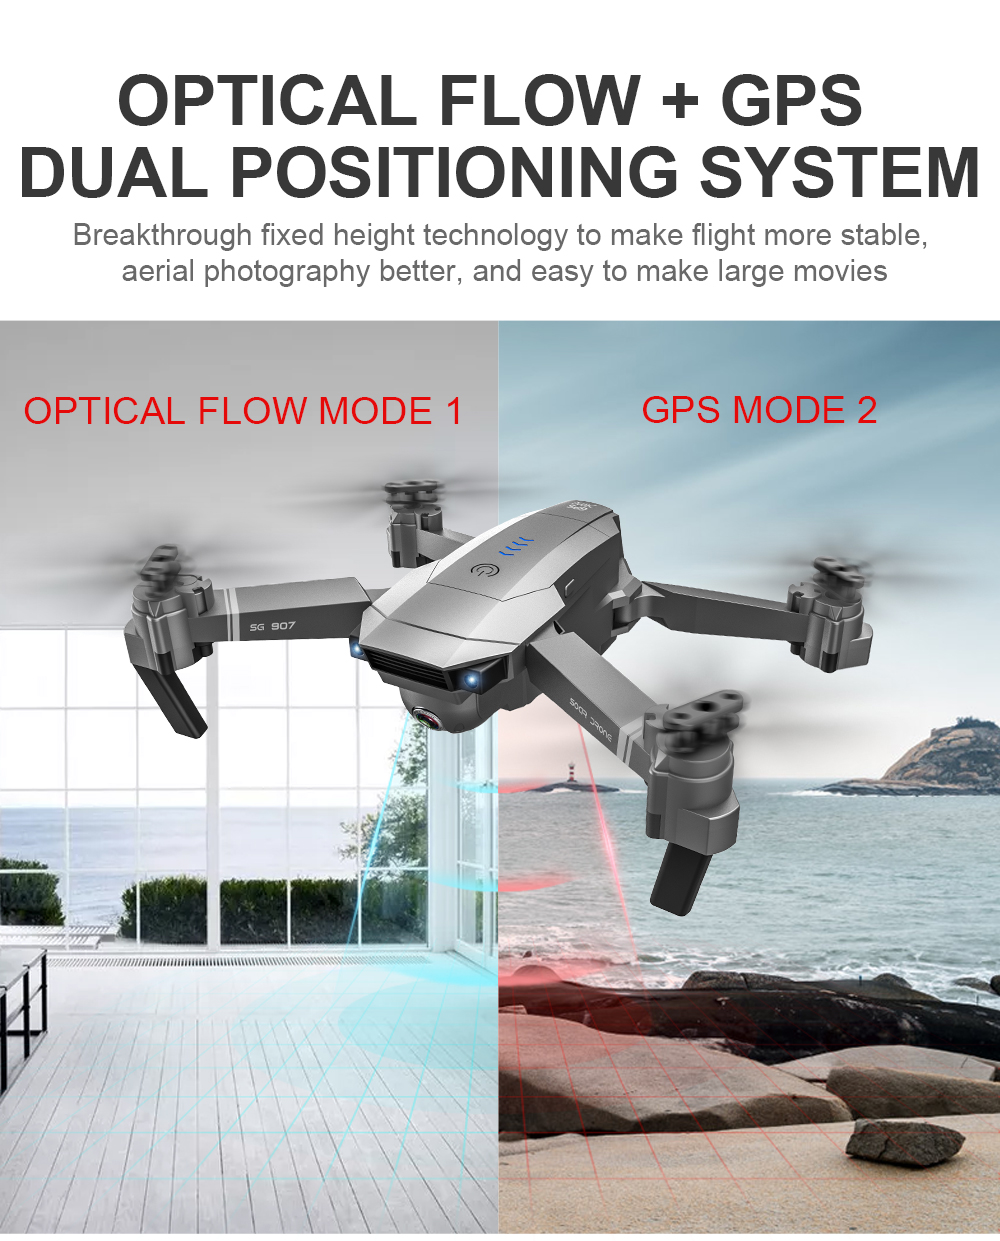 SG907 WIFI RC Quadcopter GPS Drone with 4K HD Dual Camera for Wide Angle Video Shooting 27